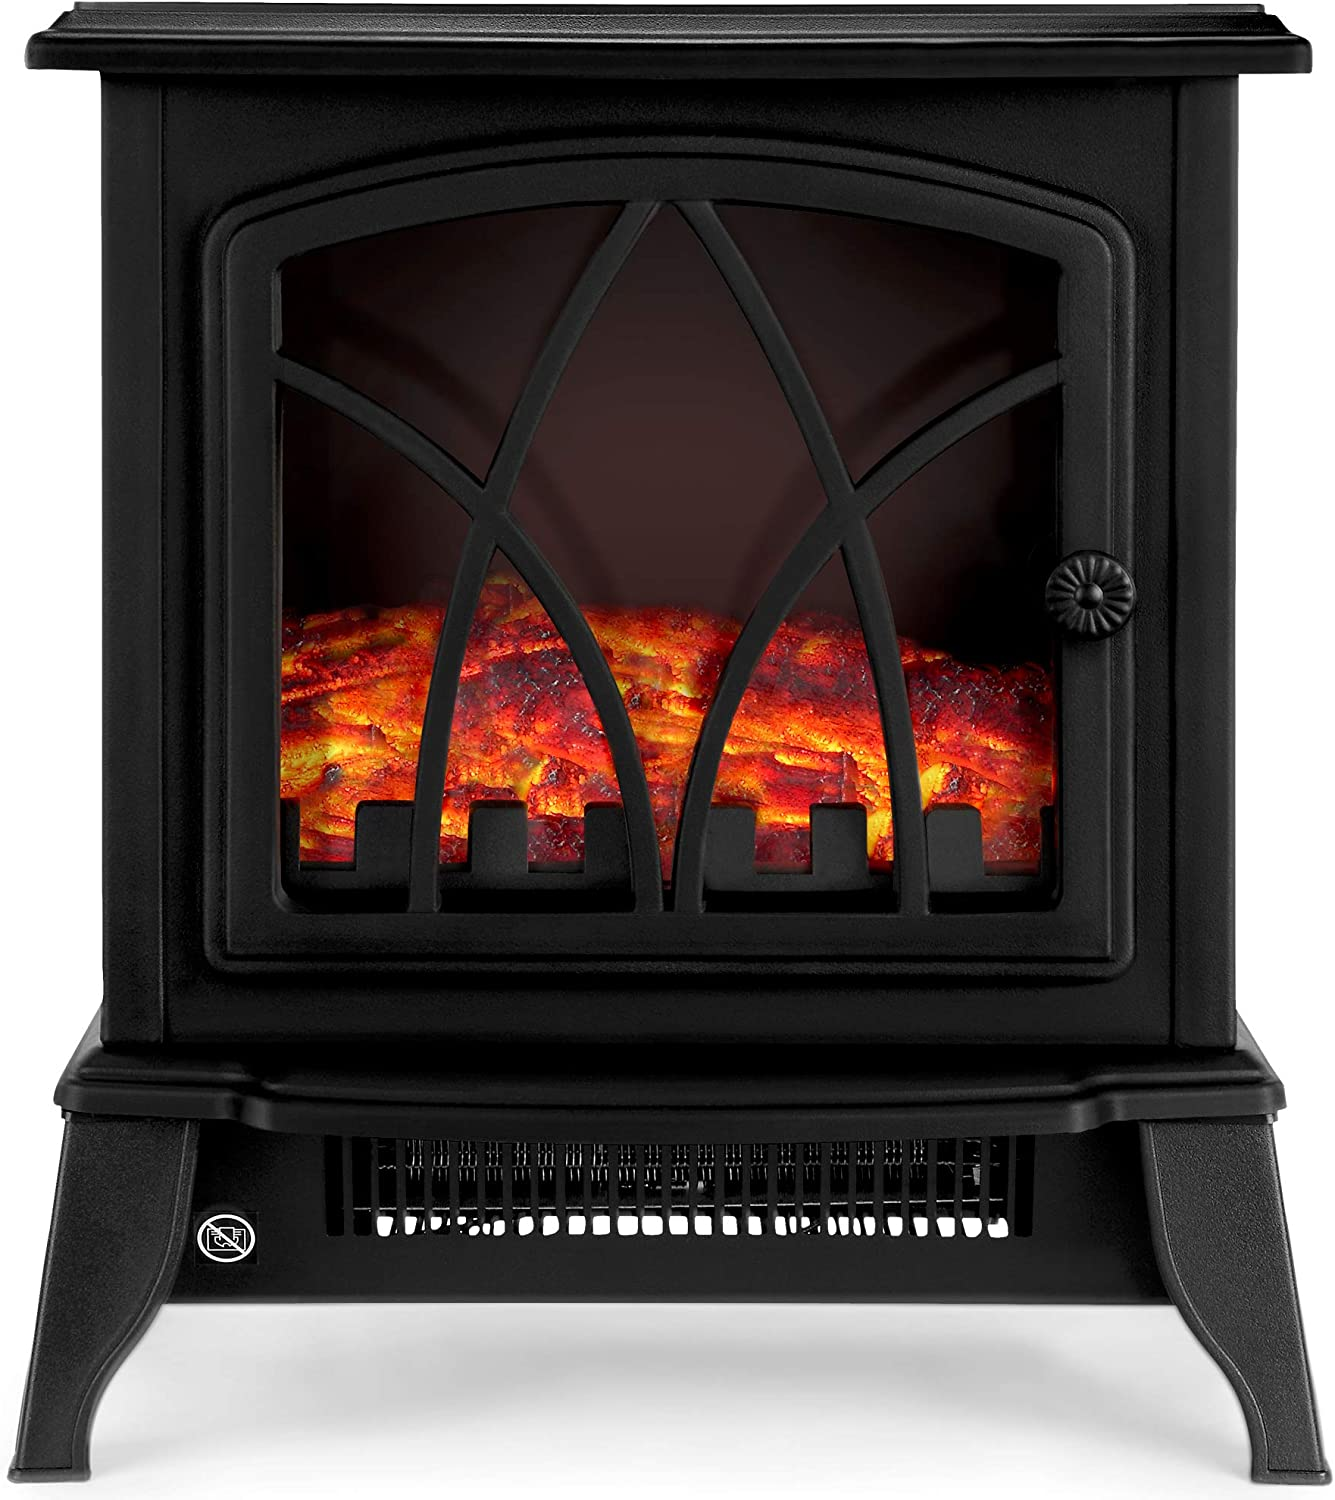 Netta Electric Fireplace Stove Heater 2000w With Fire Flame Effect Freestanding Portable Electric Log Wood Burner Effect Black Amazon Co Uk Diy Tools